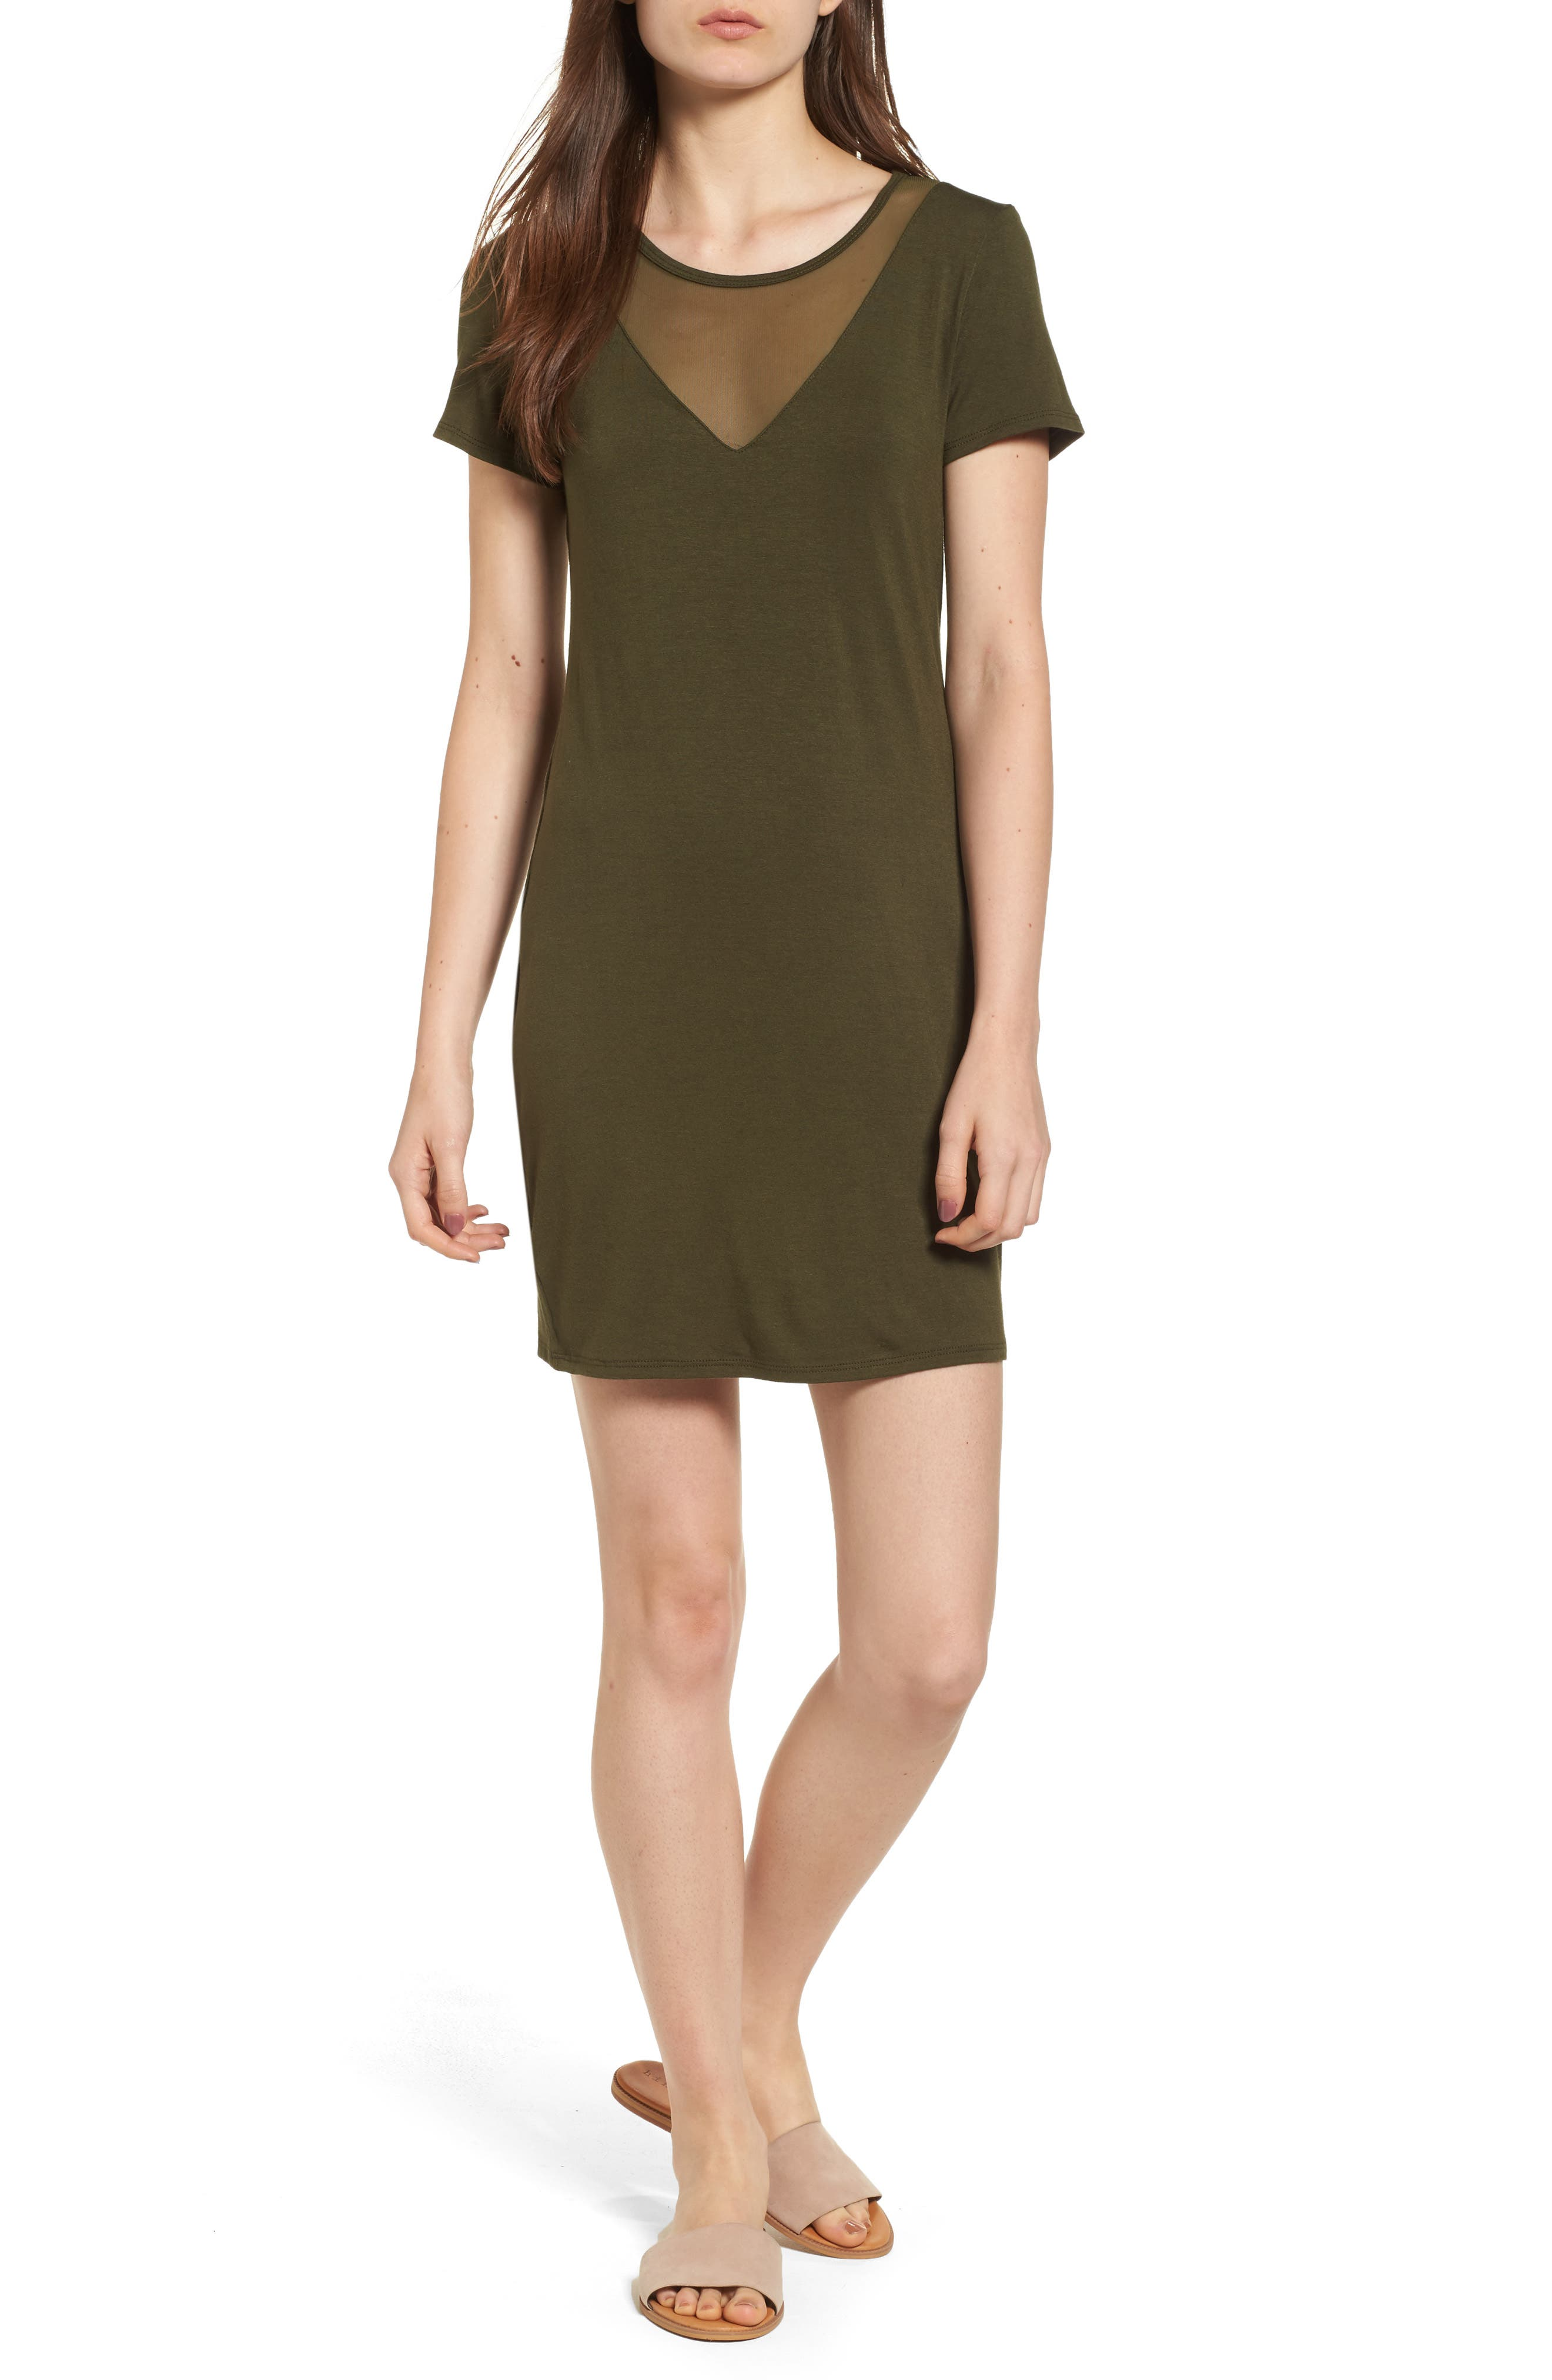 Alternate Image 1 Selected - PST by Project Social T Mesh Inset Dress